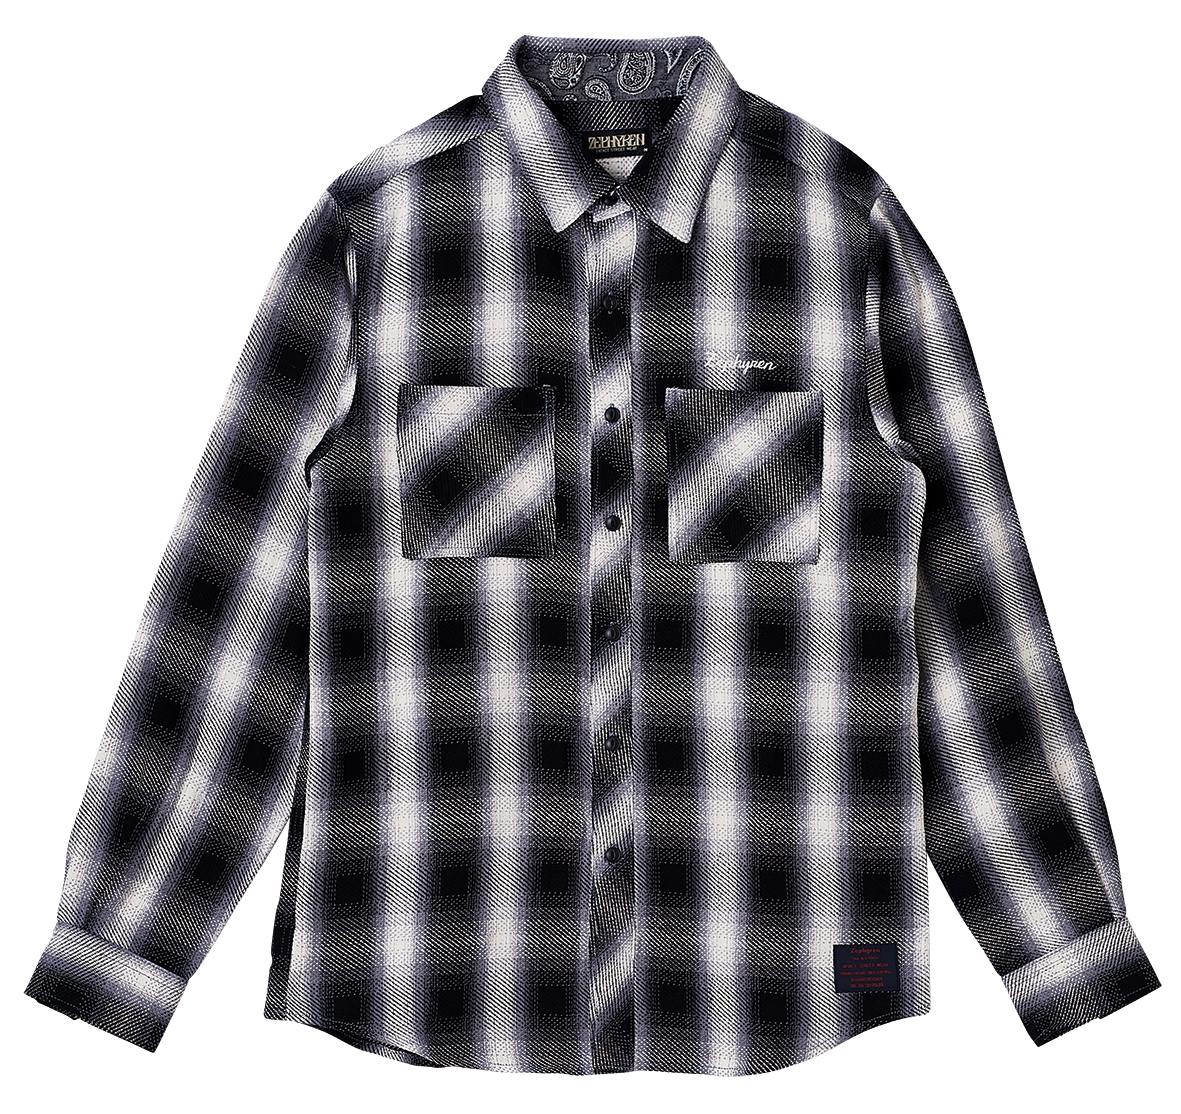 【予約商品】Zephyren(ゼファレン)CHECK SHIRT L/S - Resolve - BLACK / WHITE